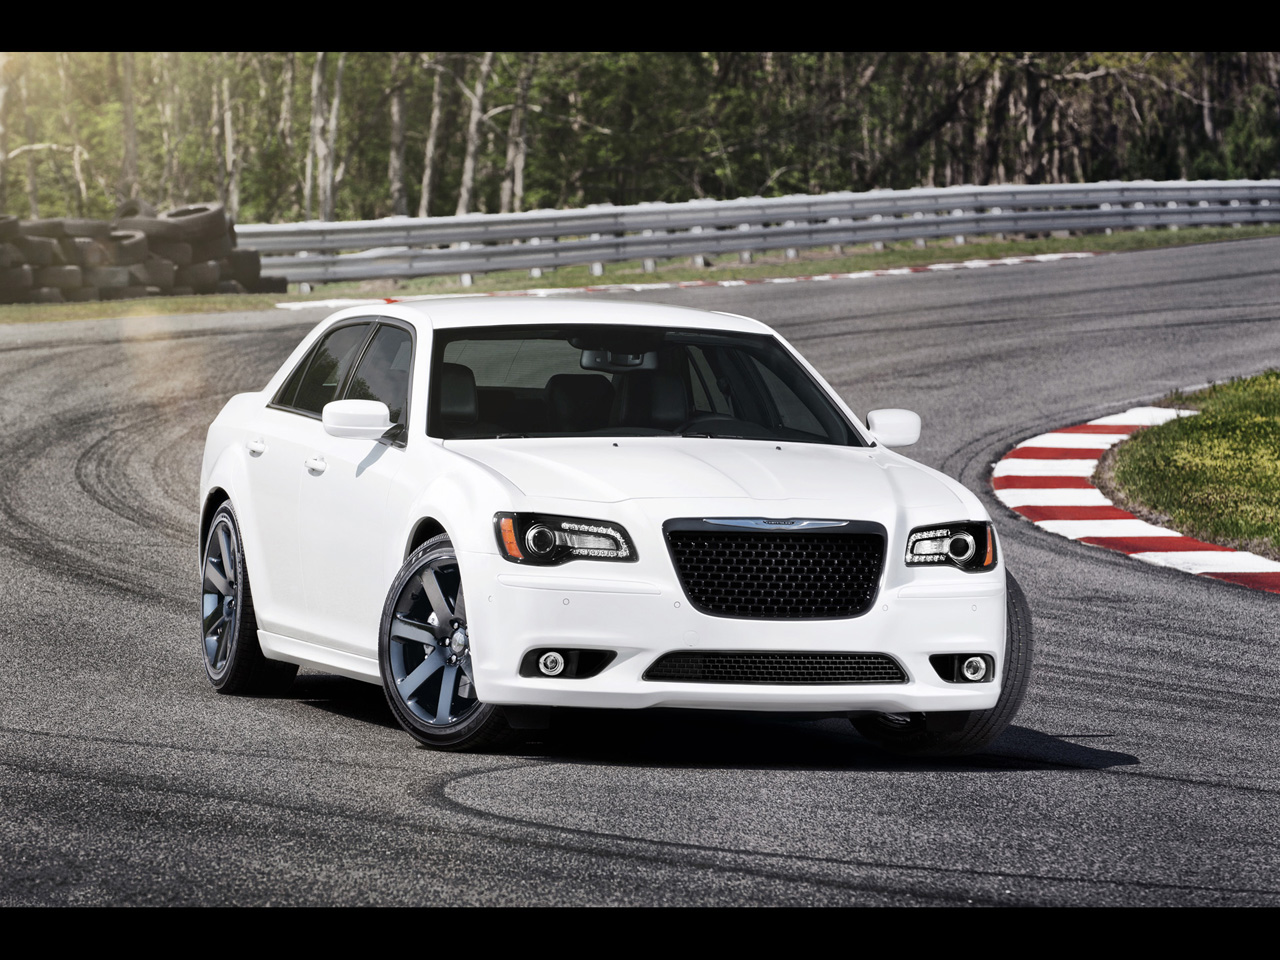 2012 chrysler 300 srt8 pictures specifications and. Black Bedroom Furniture Sets. Home Design Ideas